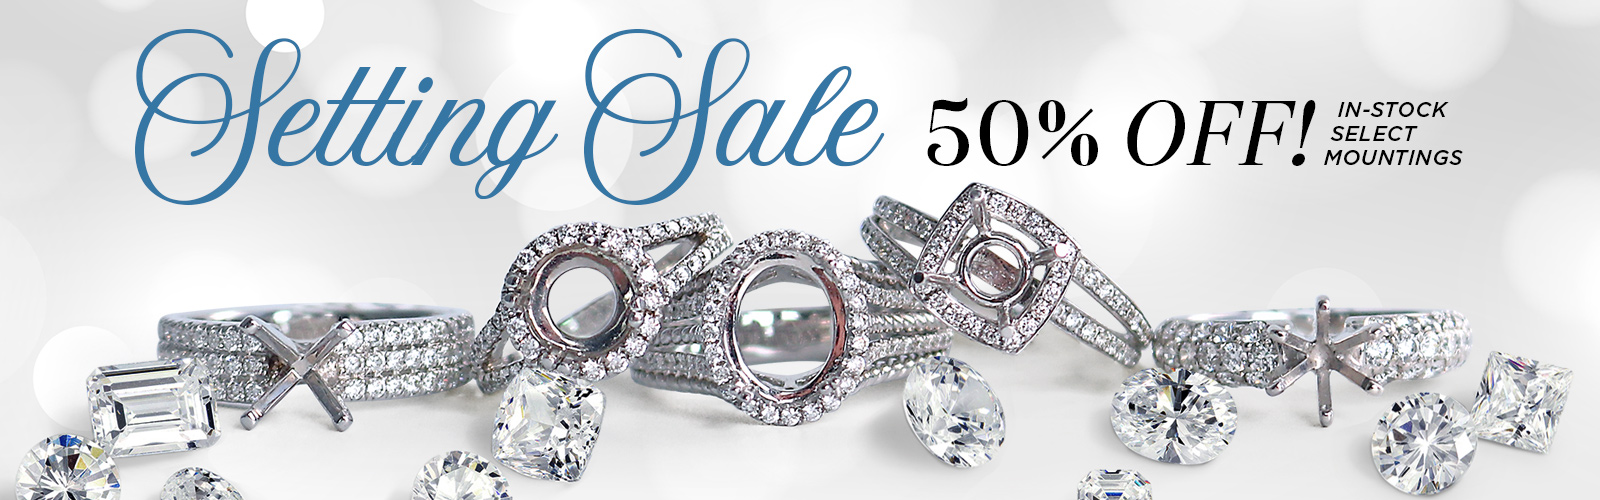 Setting Sale - 50% OFF Select Mountings